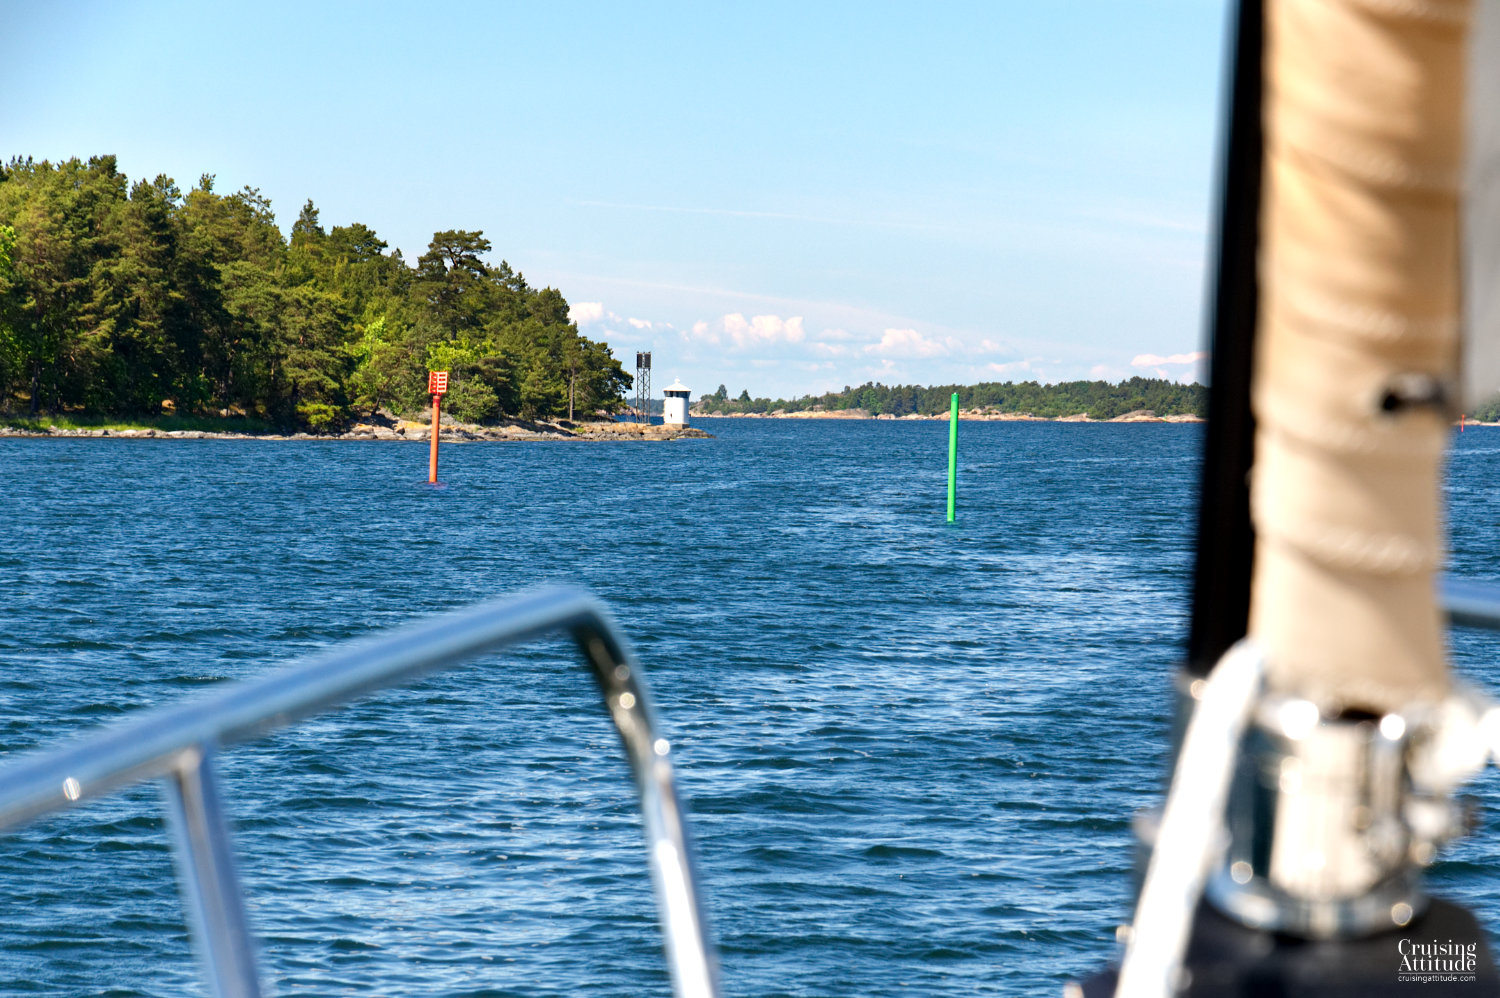 Älö anchorage | Cruising Attitude Sailing Blog - Discovery 55